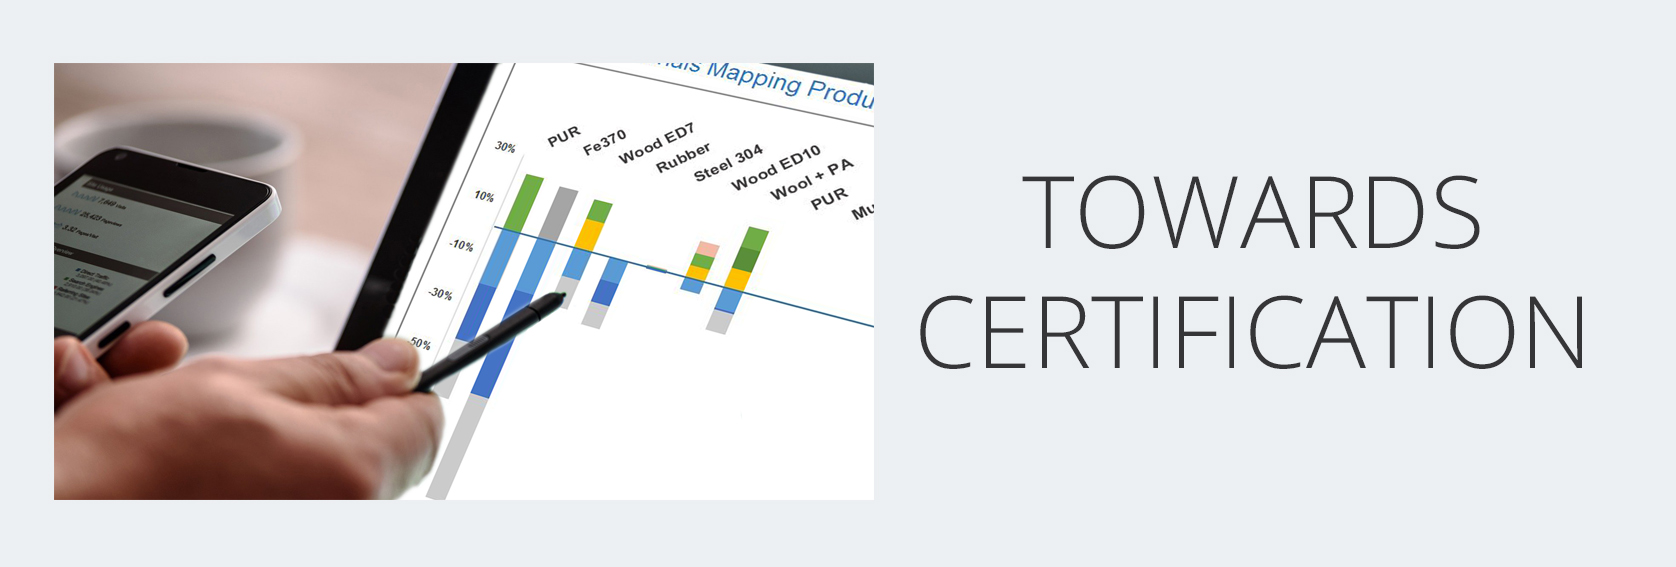 Towards the certification